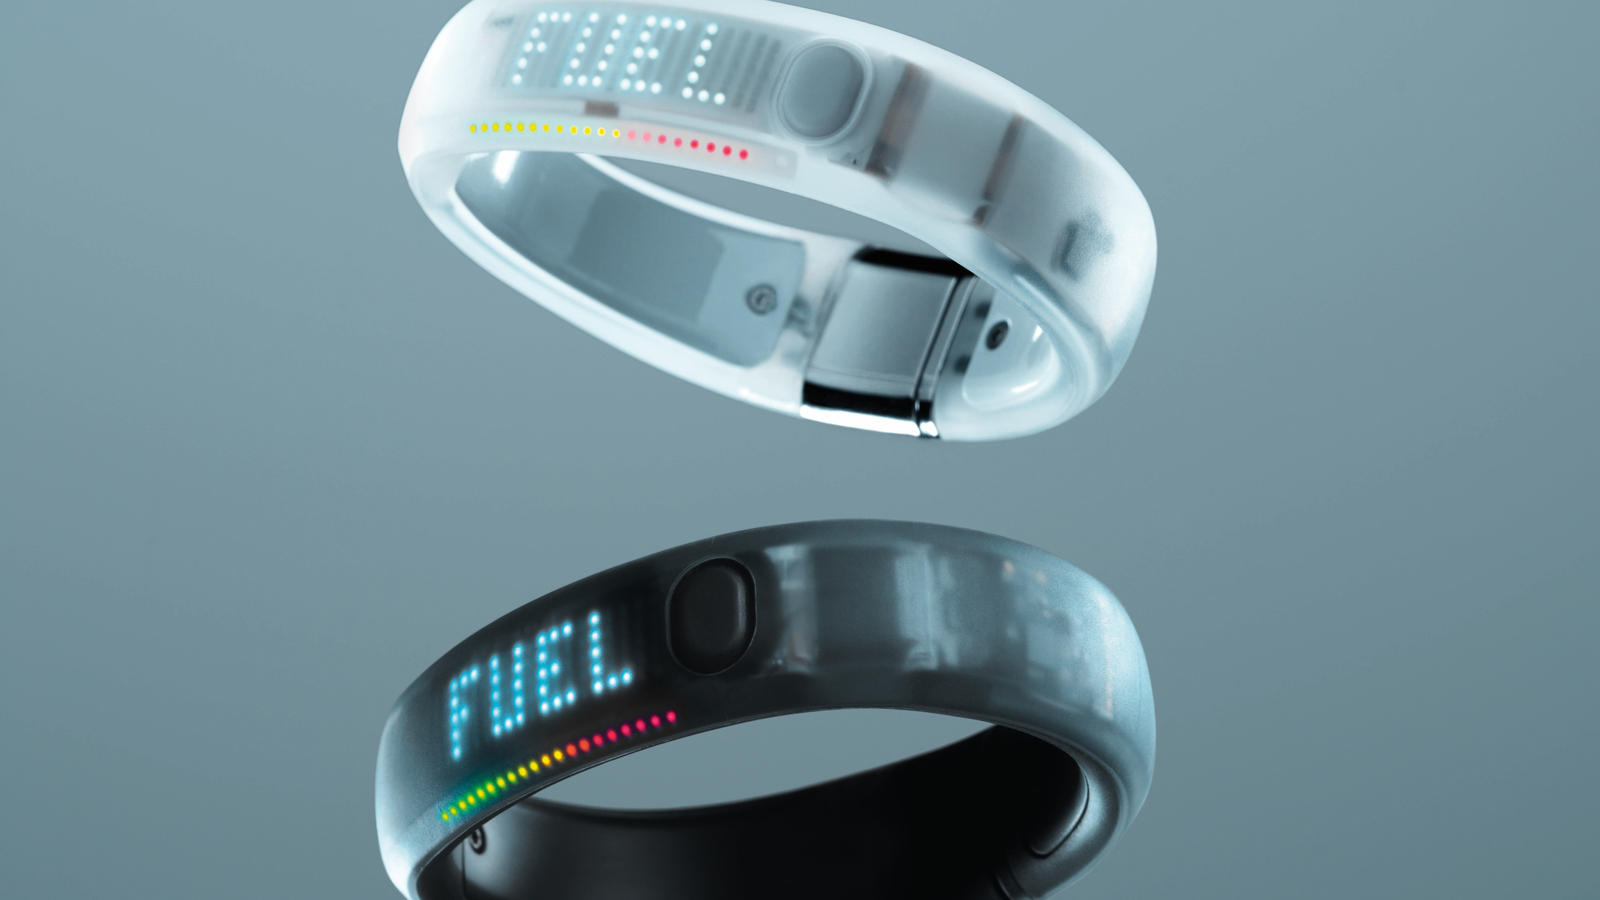 piso George Hanbury Irradiar  New Nike+ FuelBand colors launch at Nike and Apple retail - Nike News